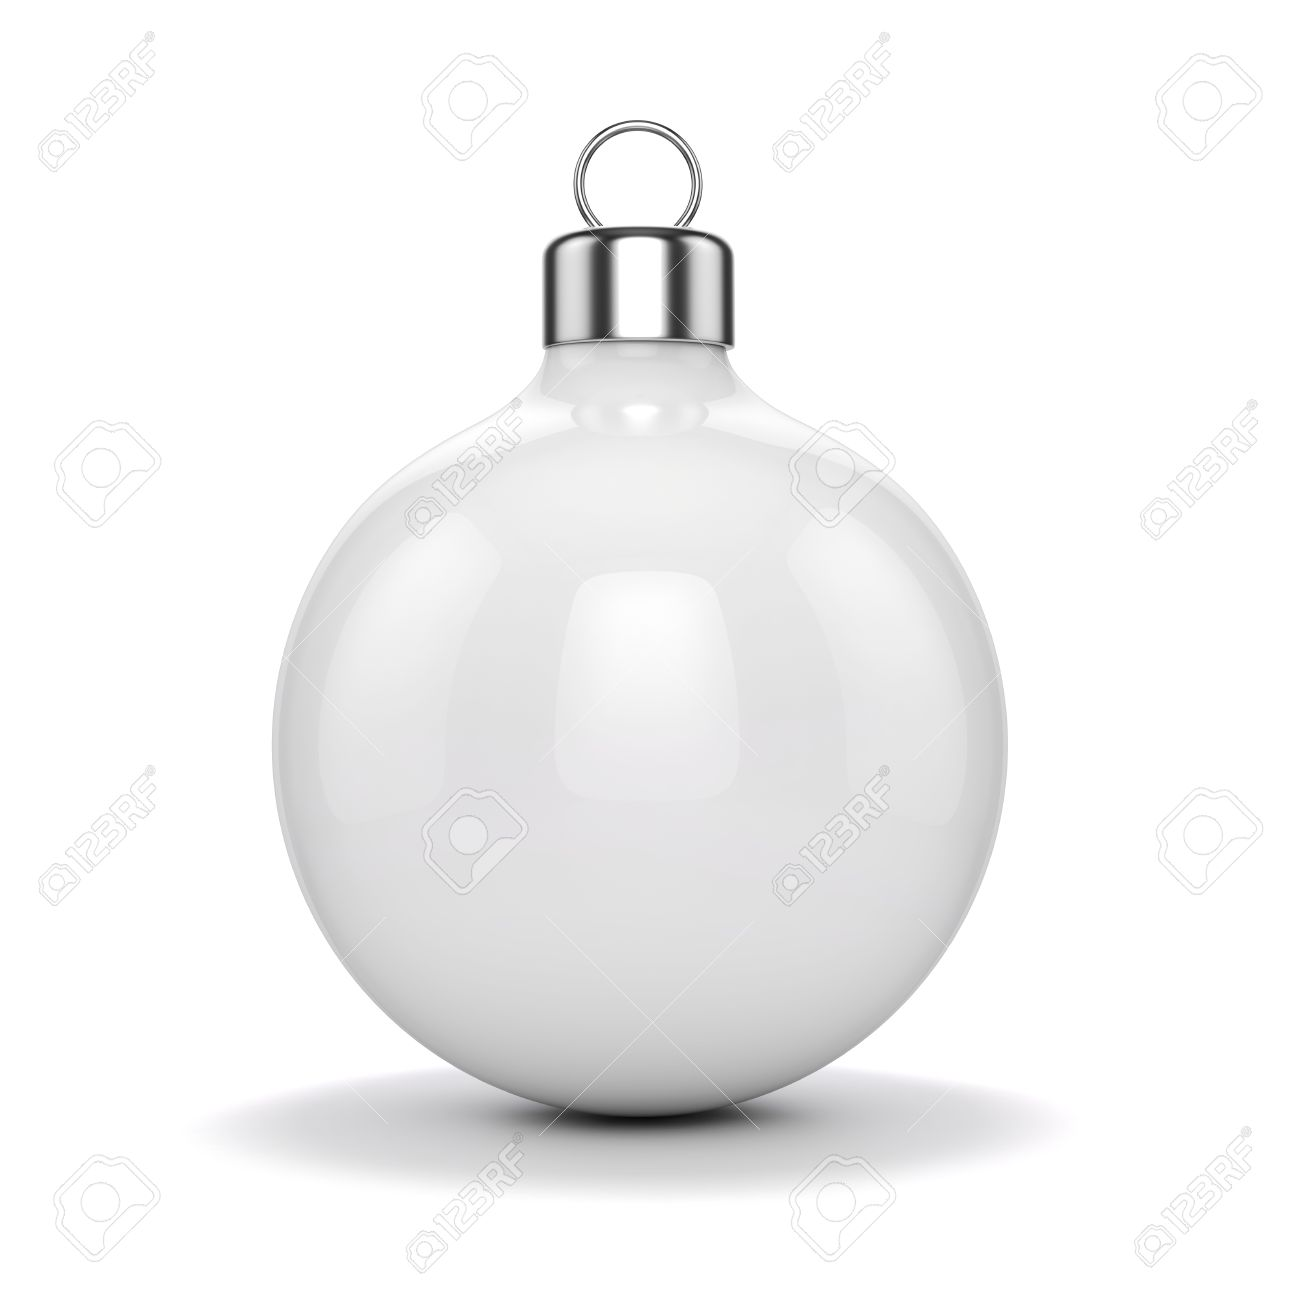 3d Christmas Ball Ornaments On White Background Stock Photo ...